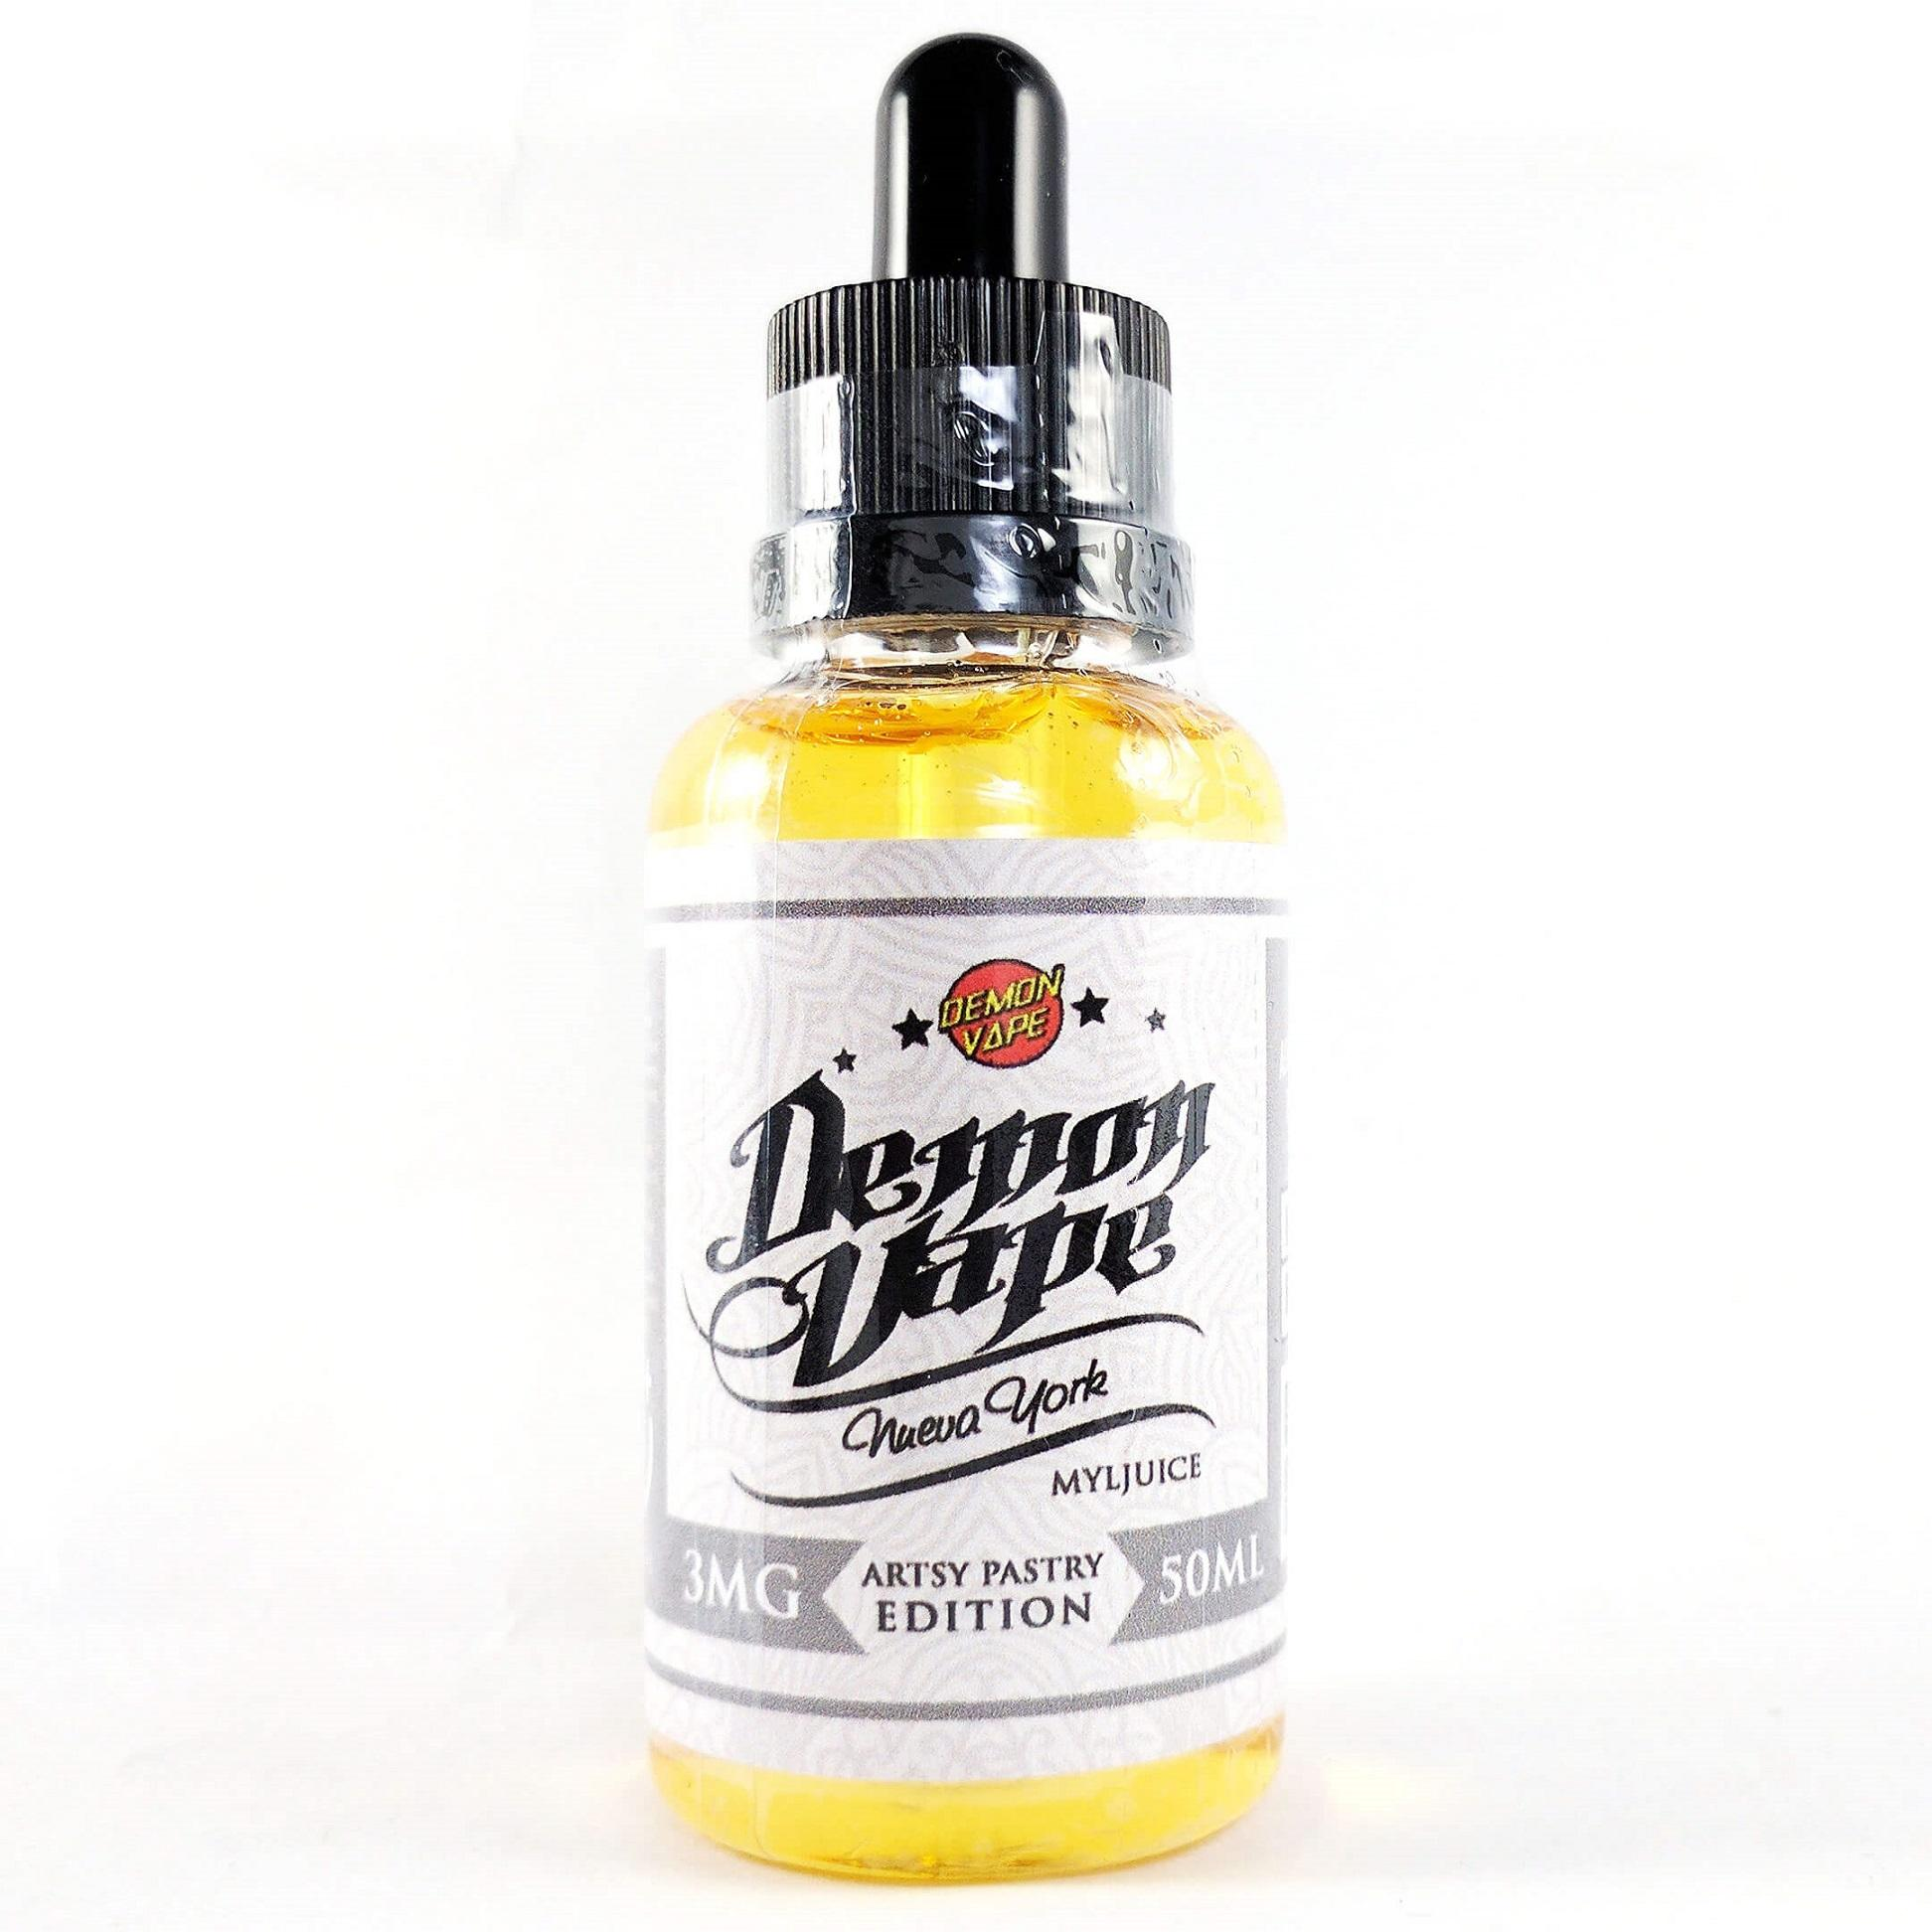 Nueva York by Demon Vape 50ml 3mg E-Liquid/E-Juice